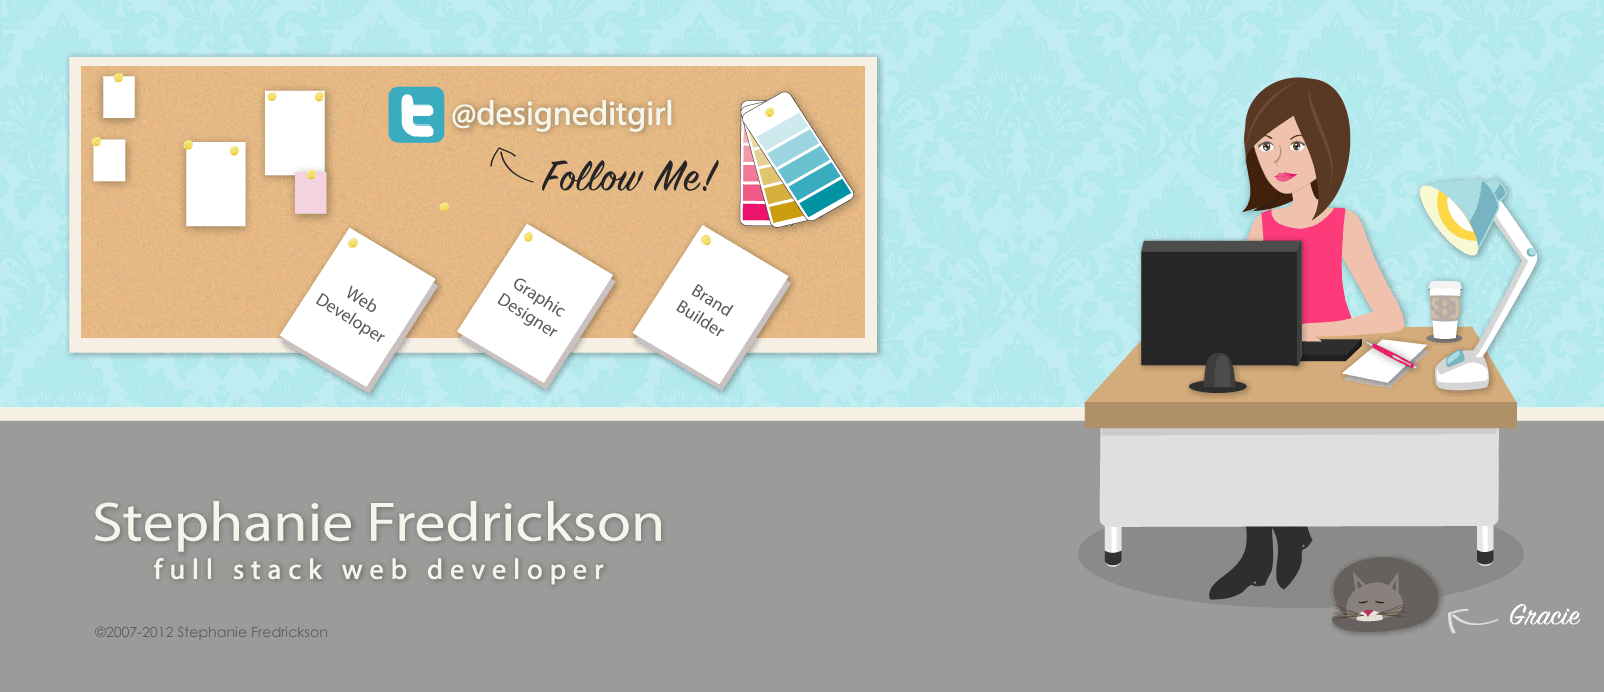 Facebook cover photo with a girly illustration